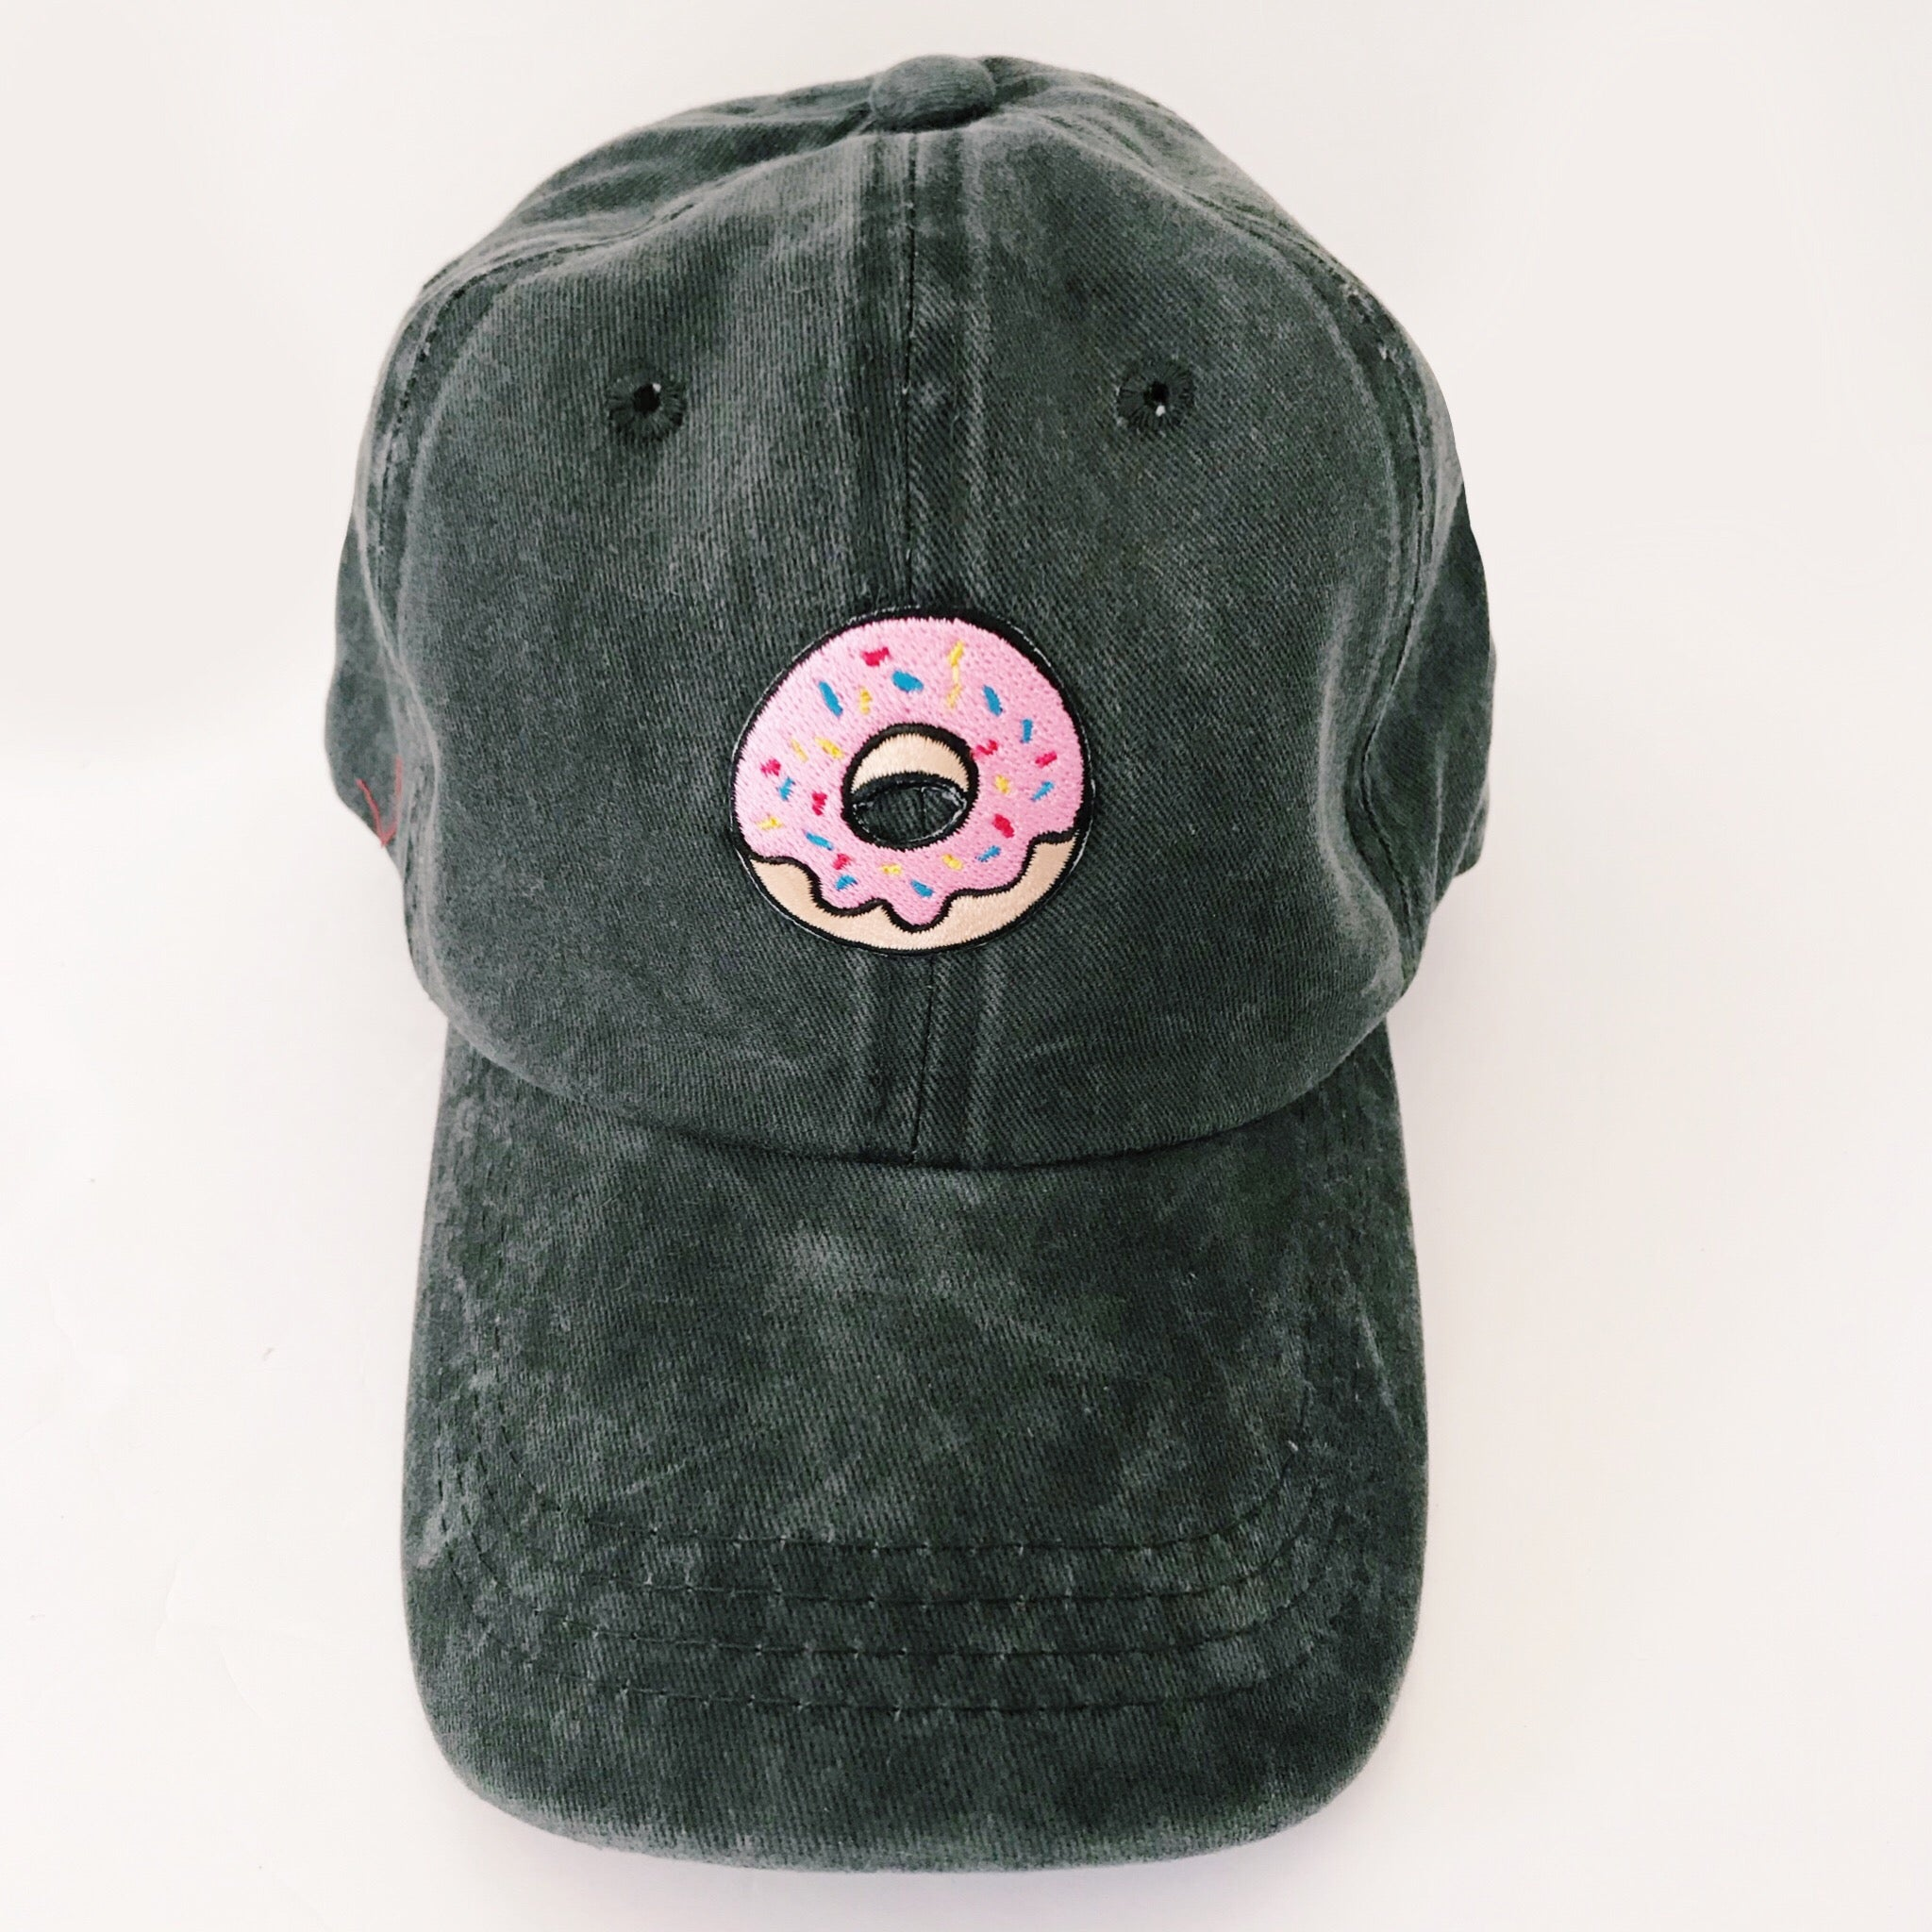 Donut Embroidered Baseball Cap